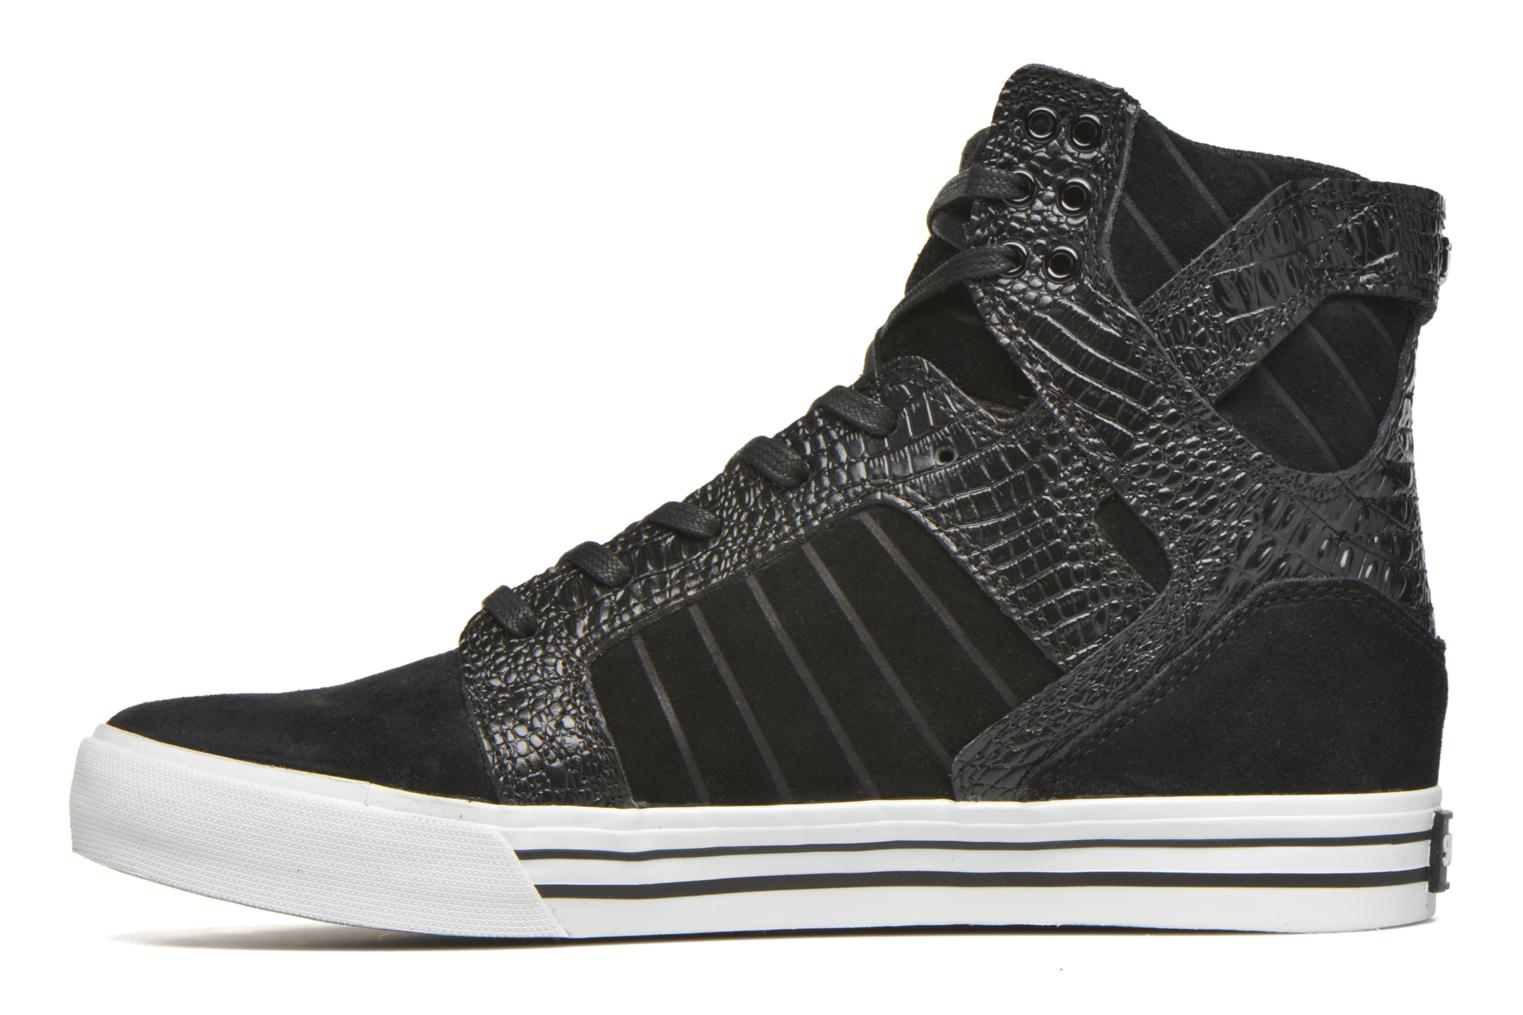 Skytop Black/Croc/White